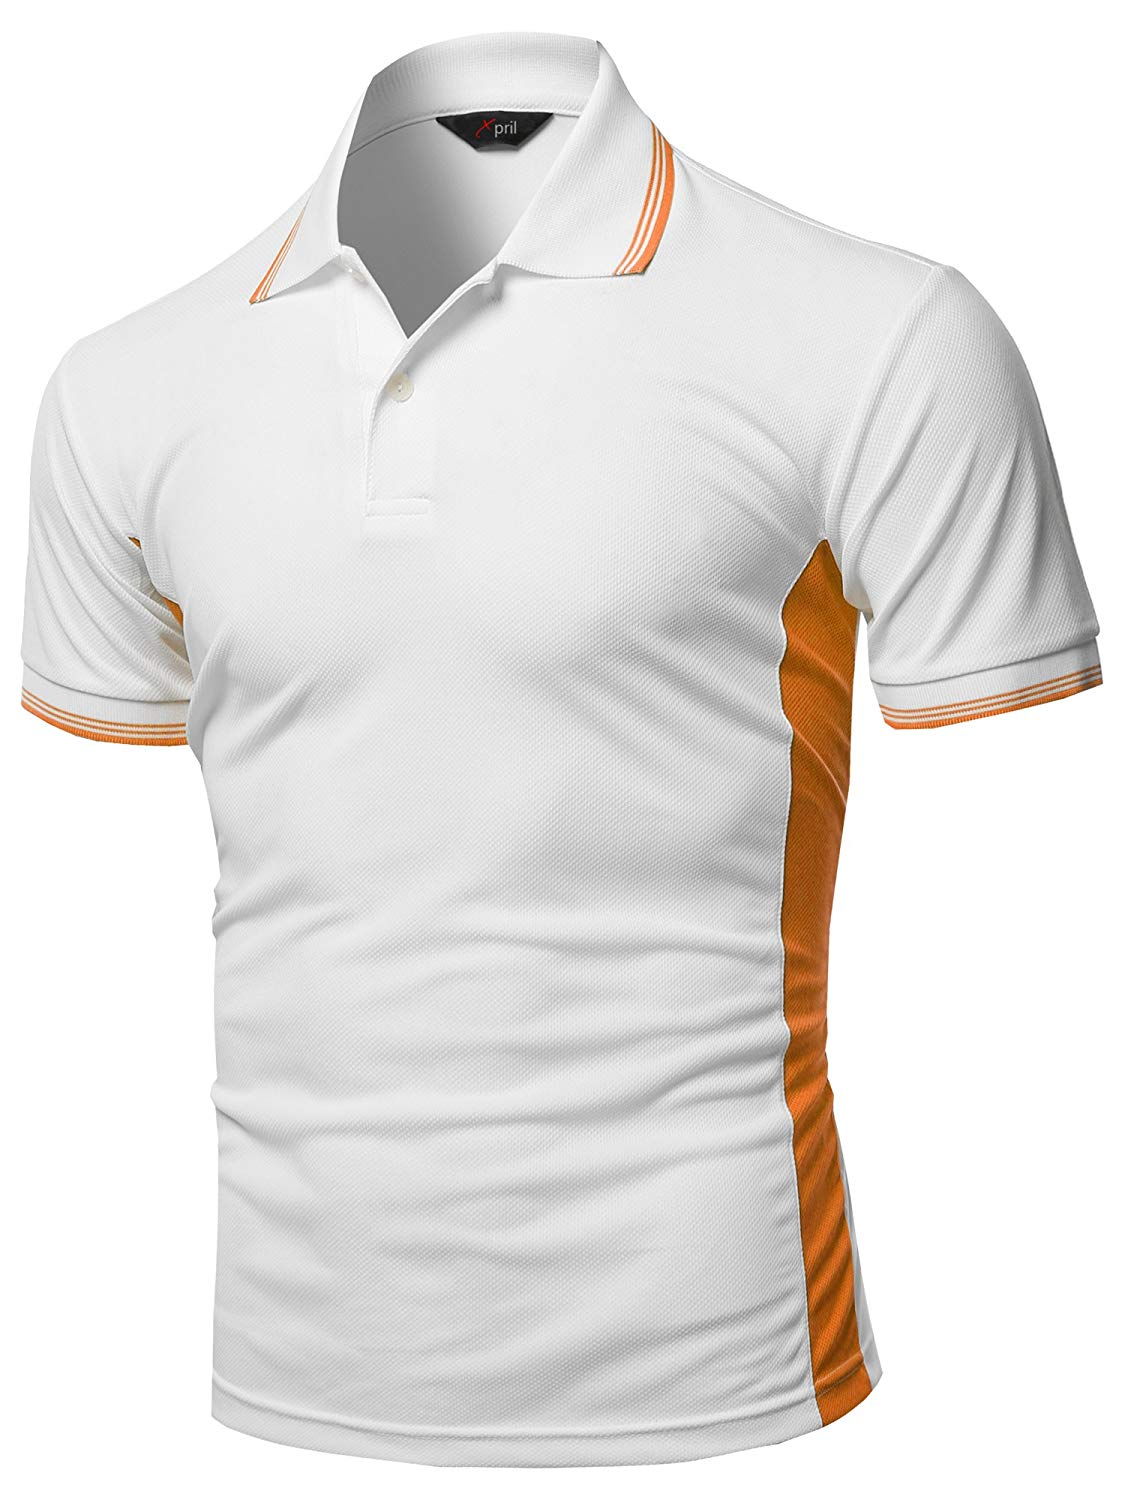 Xpril Womens Coolmax Fabric Sporty Feel Functional Short Sleeve Polo T-Shirt